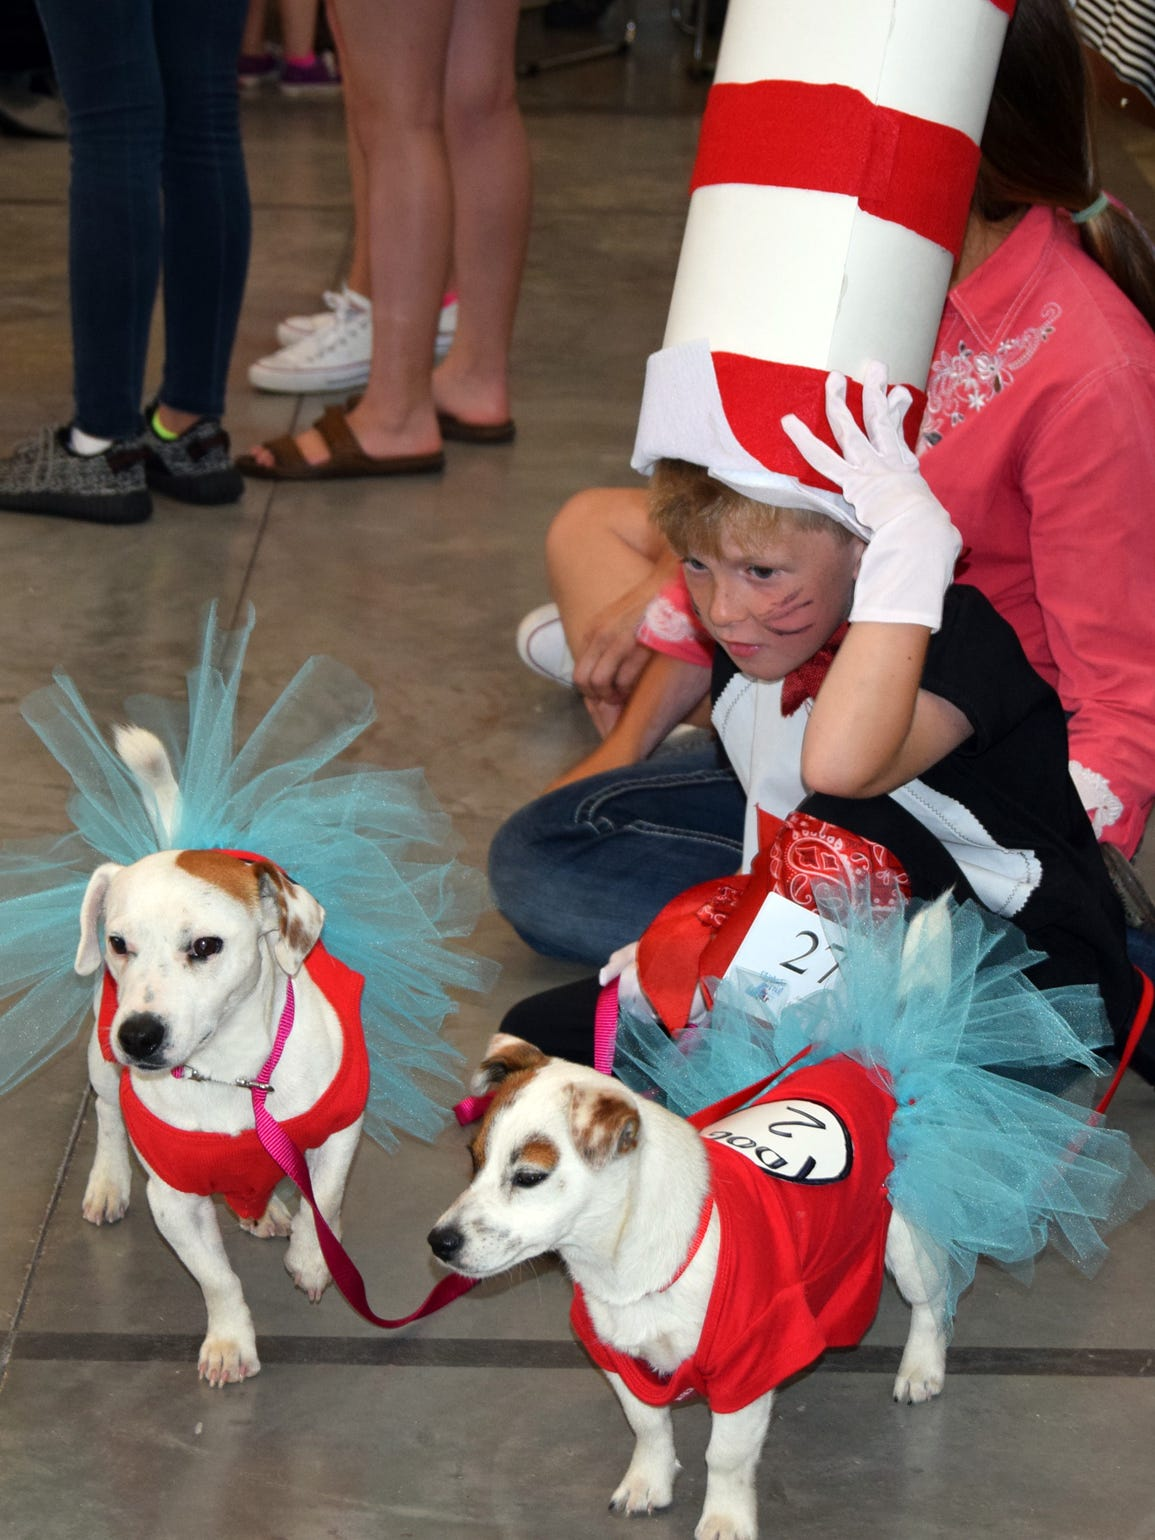 A young girl dress as The Cat in the Hat and her dogs